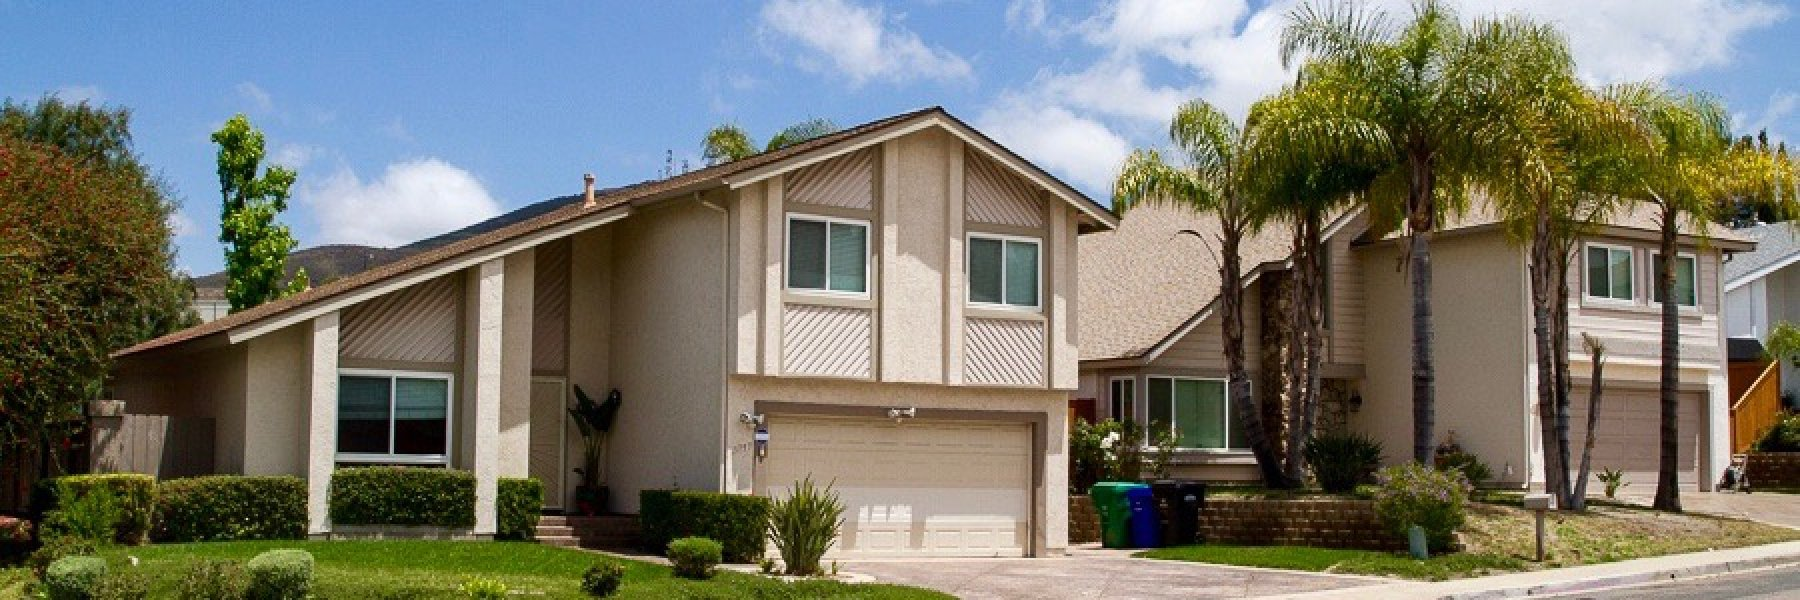 Rancho Penasquitos is a community of homes in San Diego California